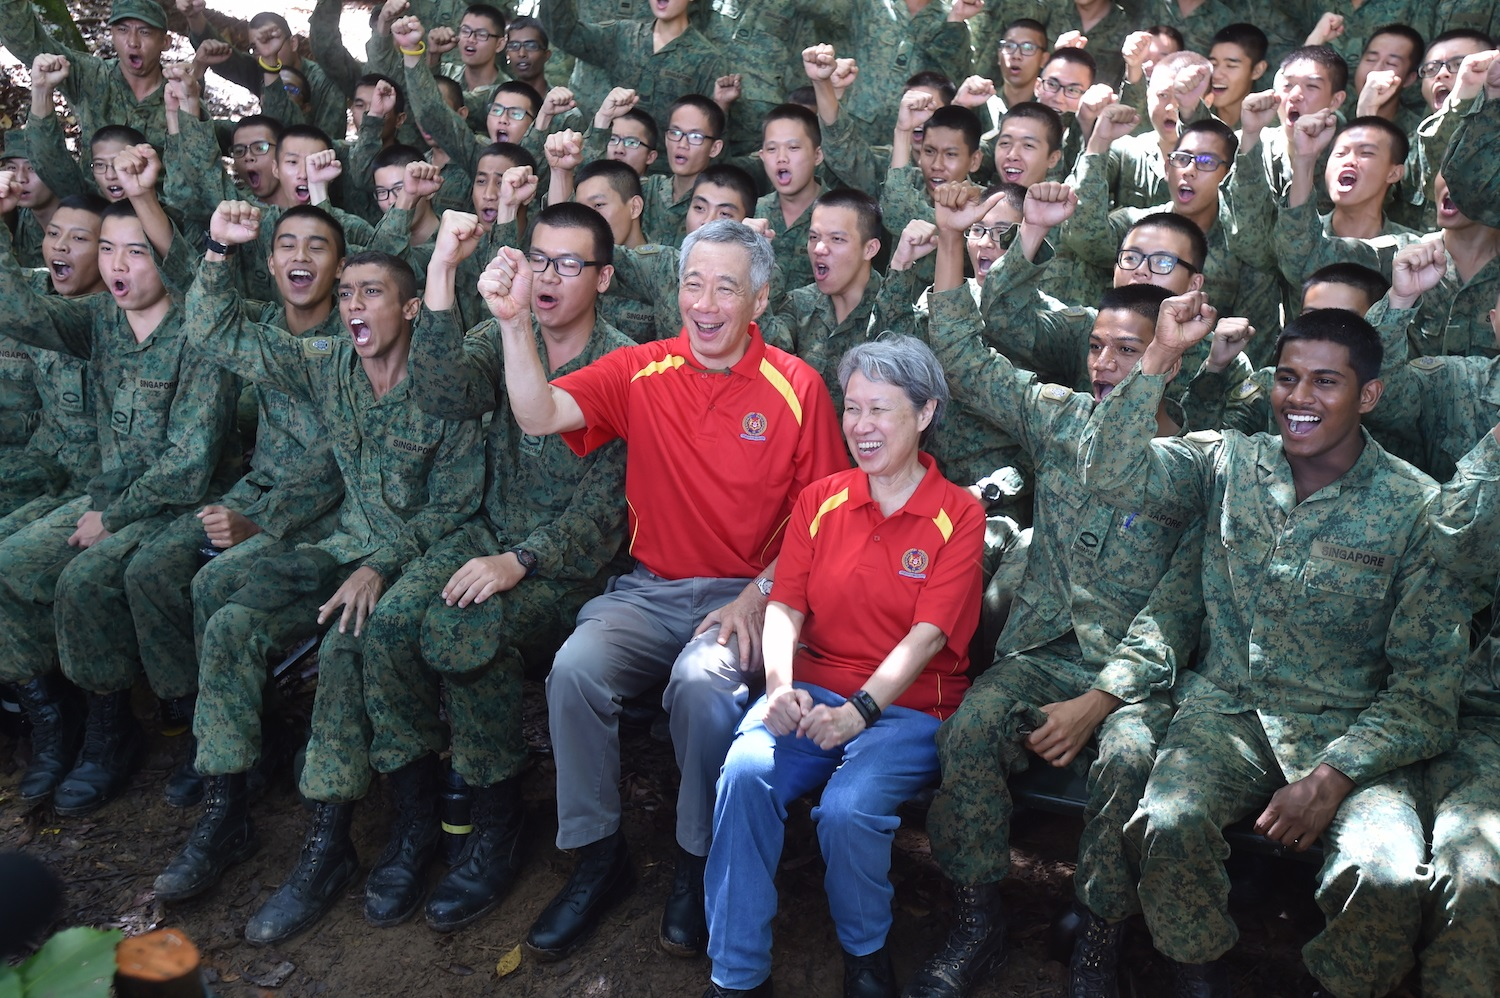 Prime Minister Lee Hsien Loong cheering with the soldiers from 6th Battalion, Singapore Infantry Regiment, at the end of their training today, 06 October 2017.